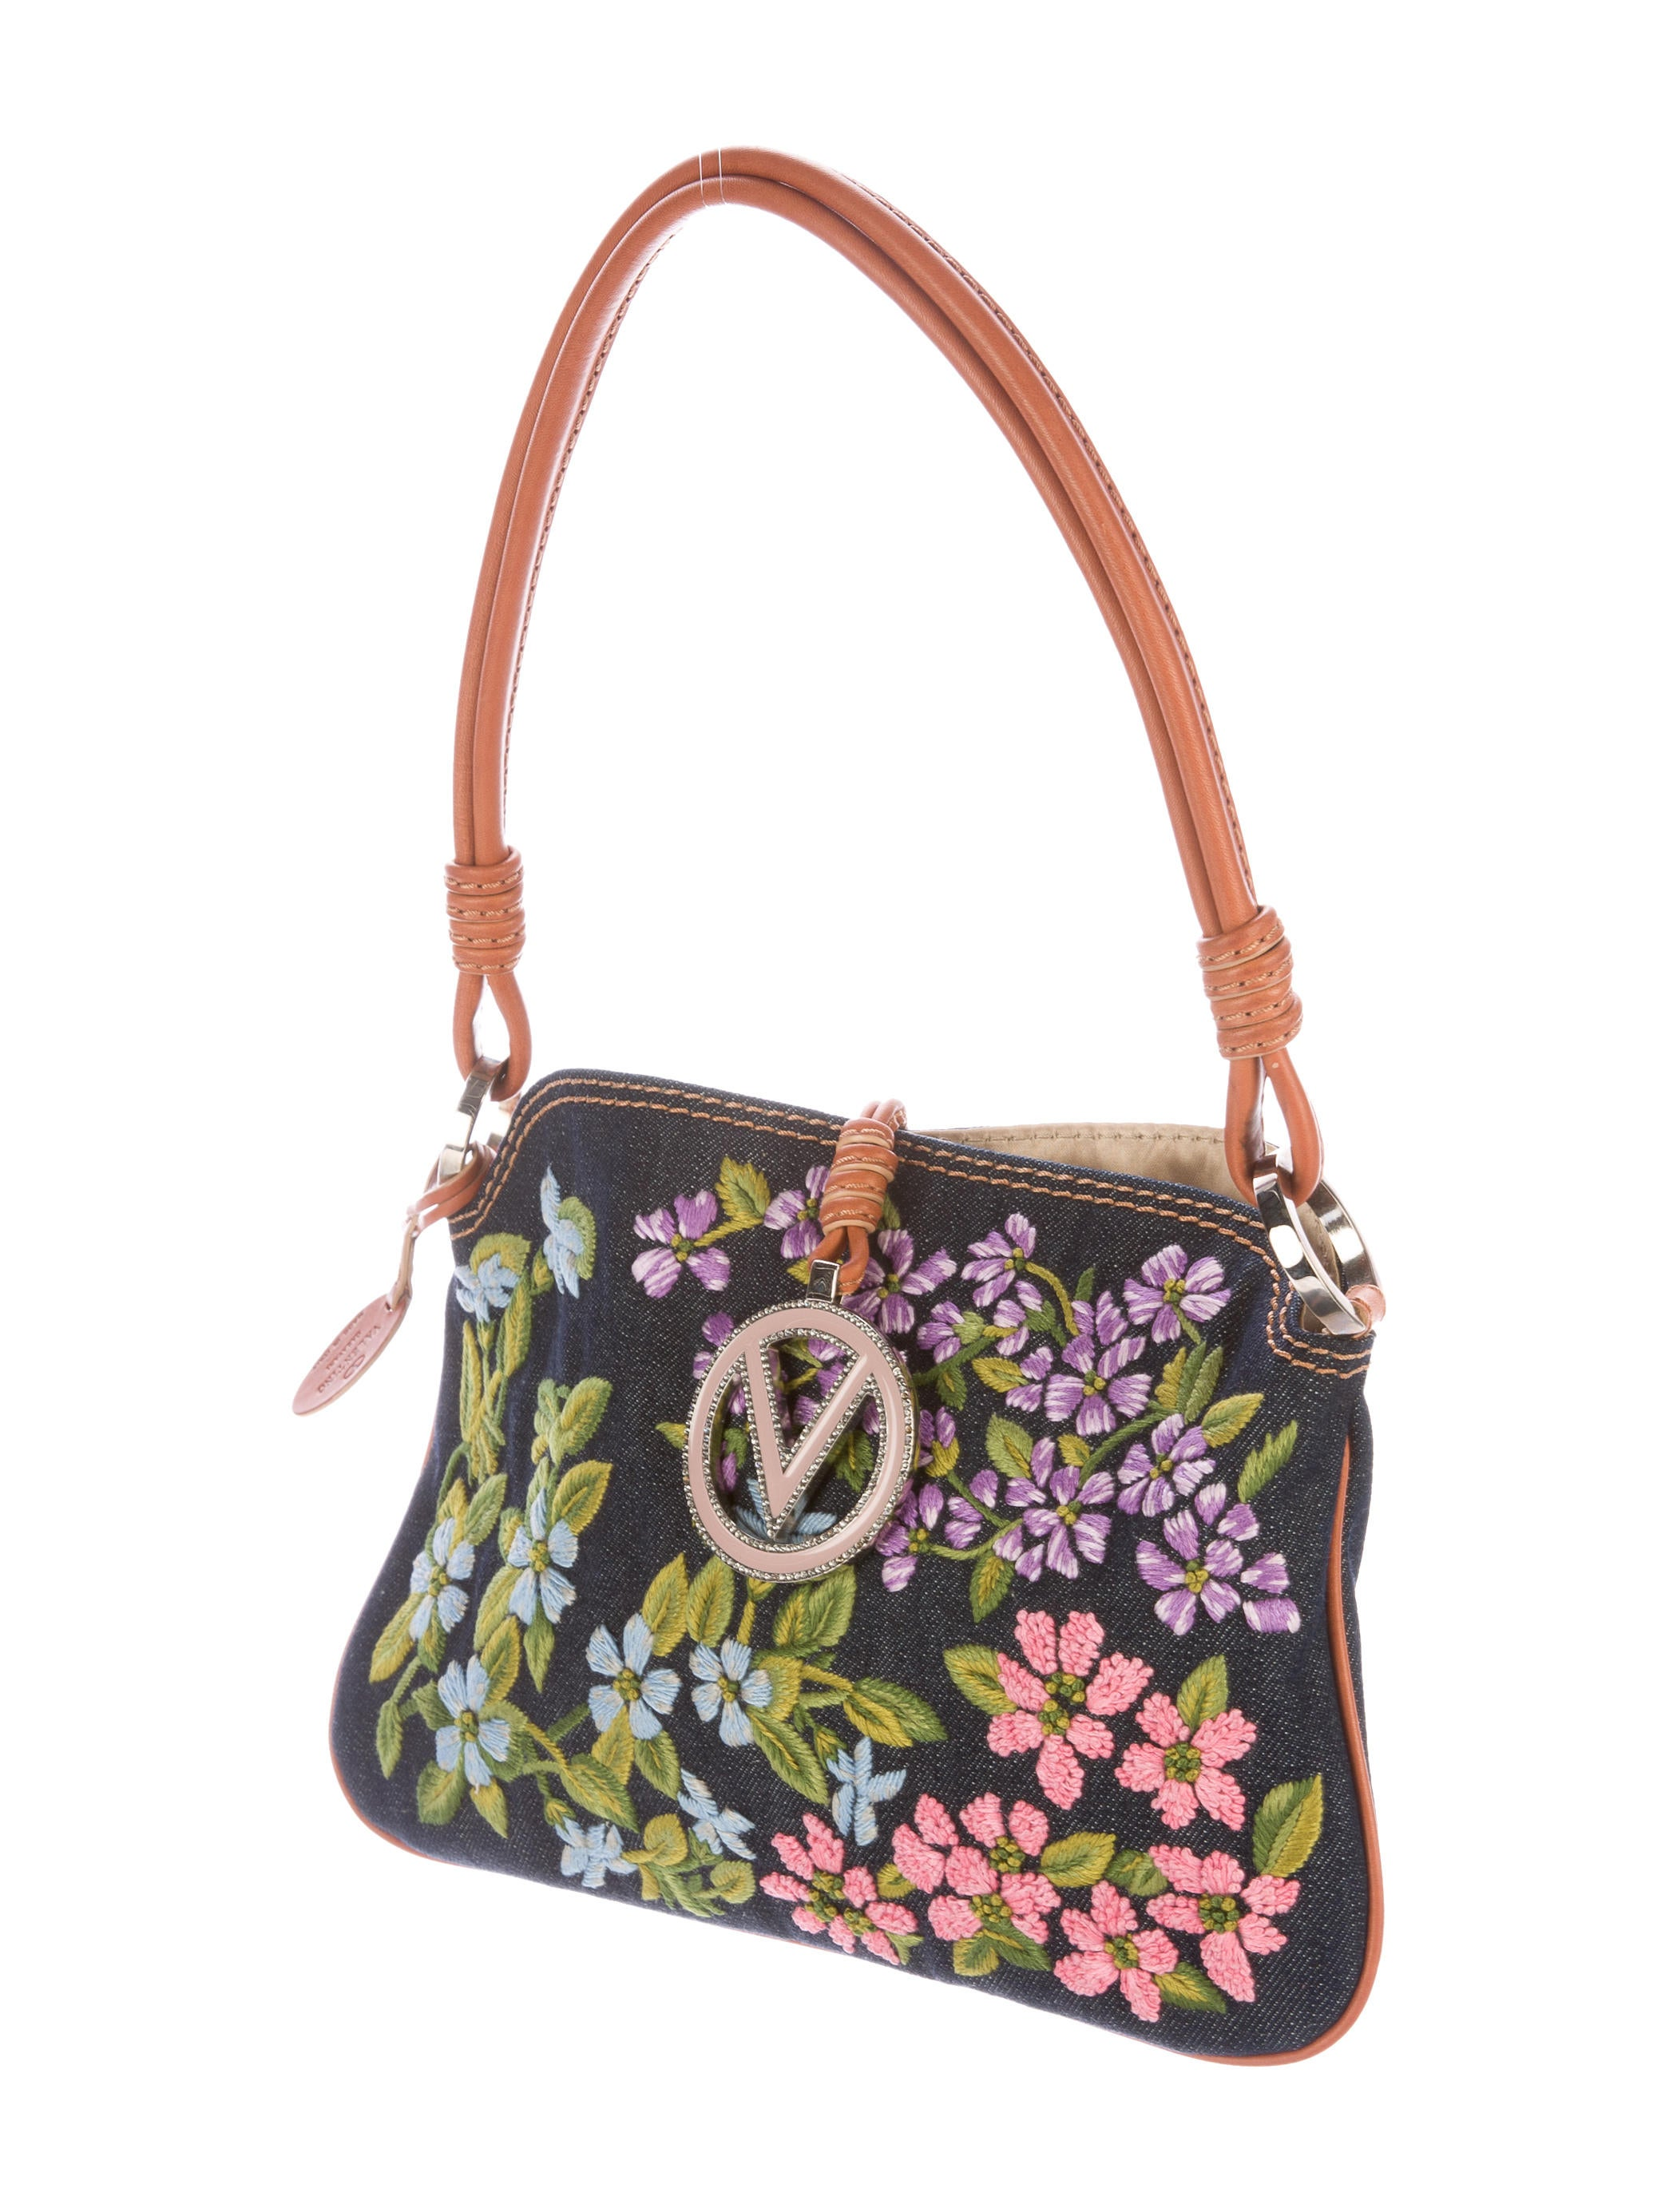 Valentino Floral Embroidered Shoulder Bag - Handbags - VAL59423 | The RealReal